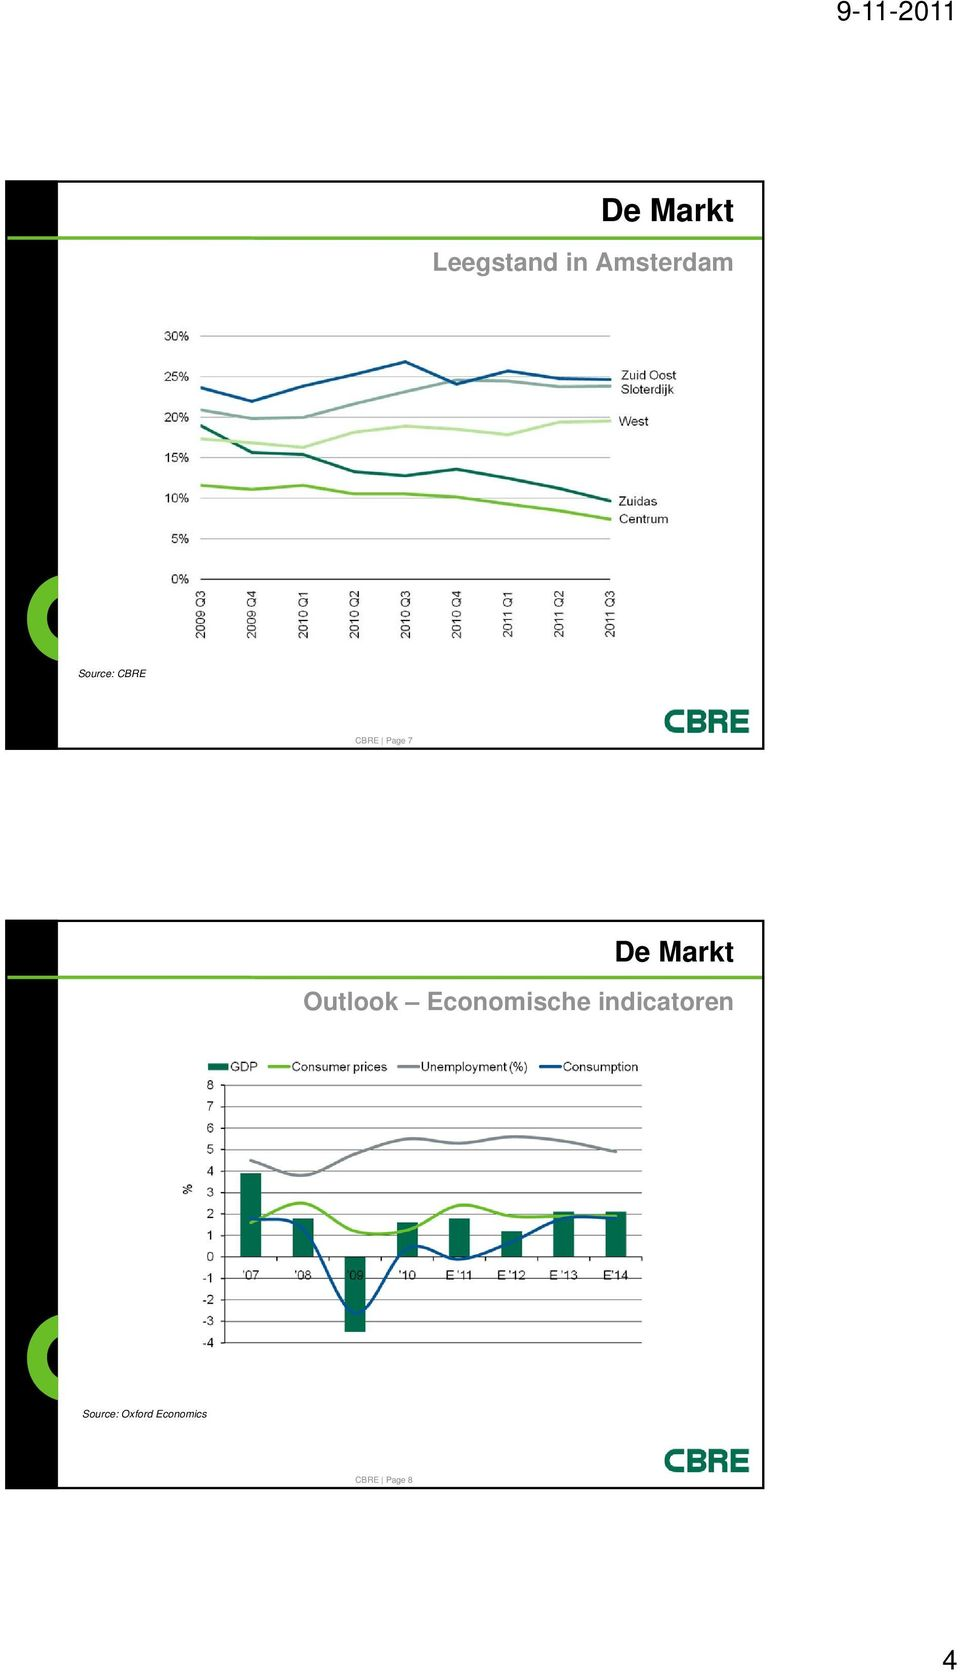 Outlook Economische indicatoren